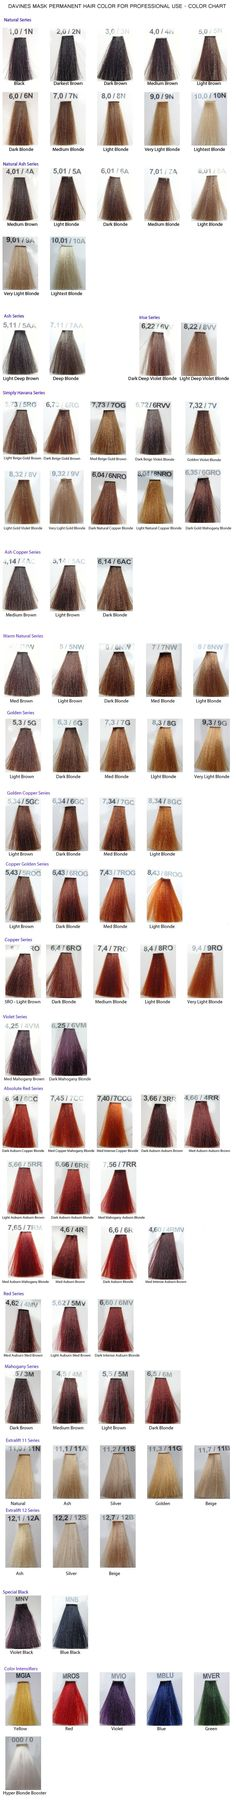 Light Ash Brown Hair Color Chart  Google Search  Creative Hair